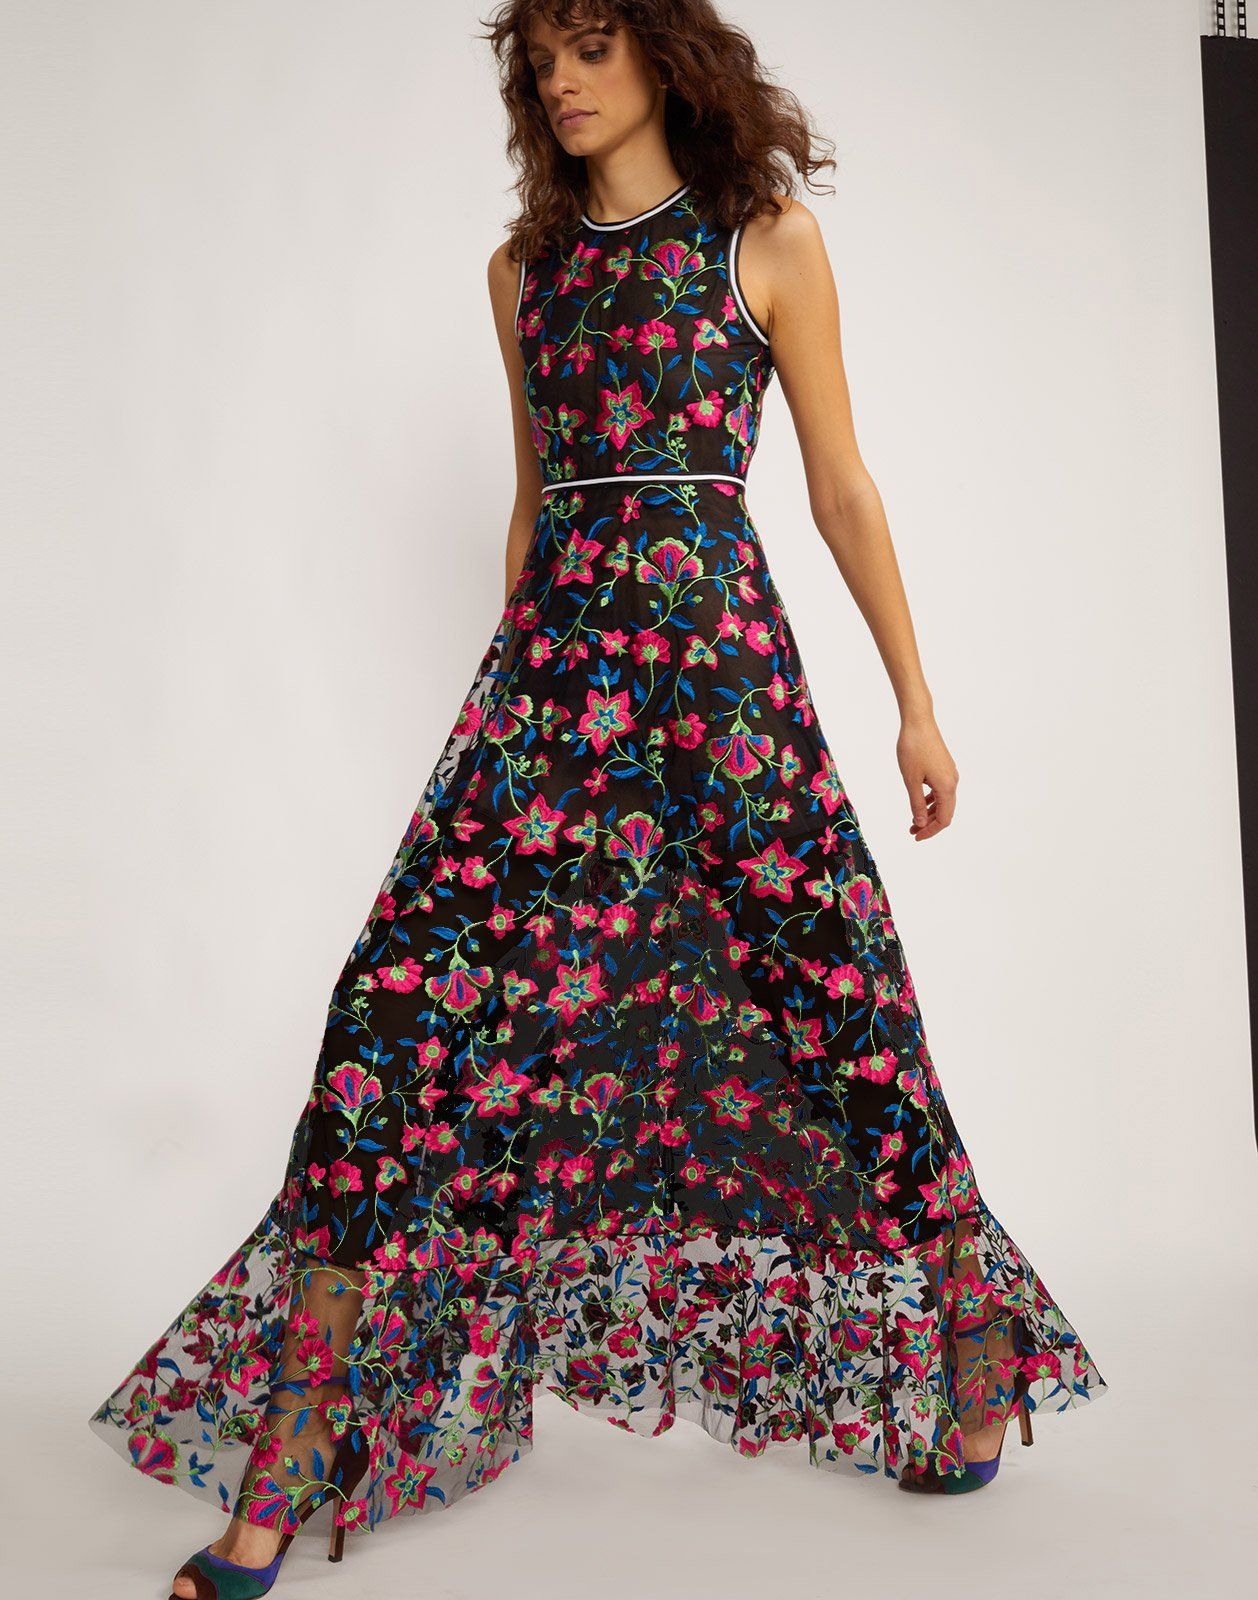 Three Quarter View Of The Embroidered Mesh Maxi Dress Floral Embroidered Dress Spring Maxi Dress Party Dresses For Women [ 1600 x 1258 Pixel ]